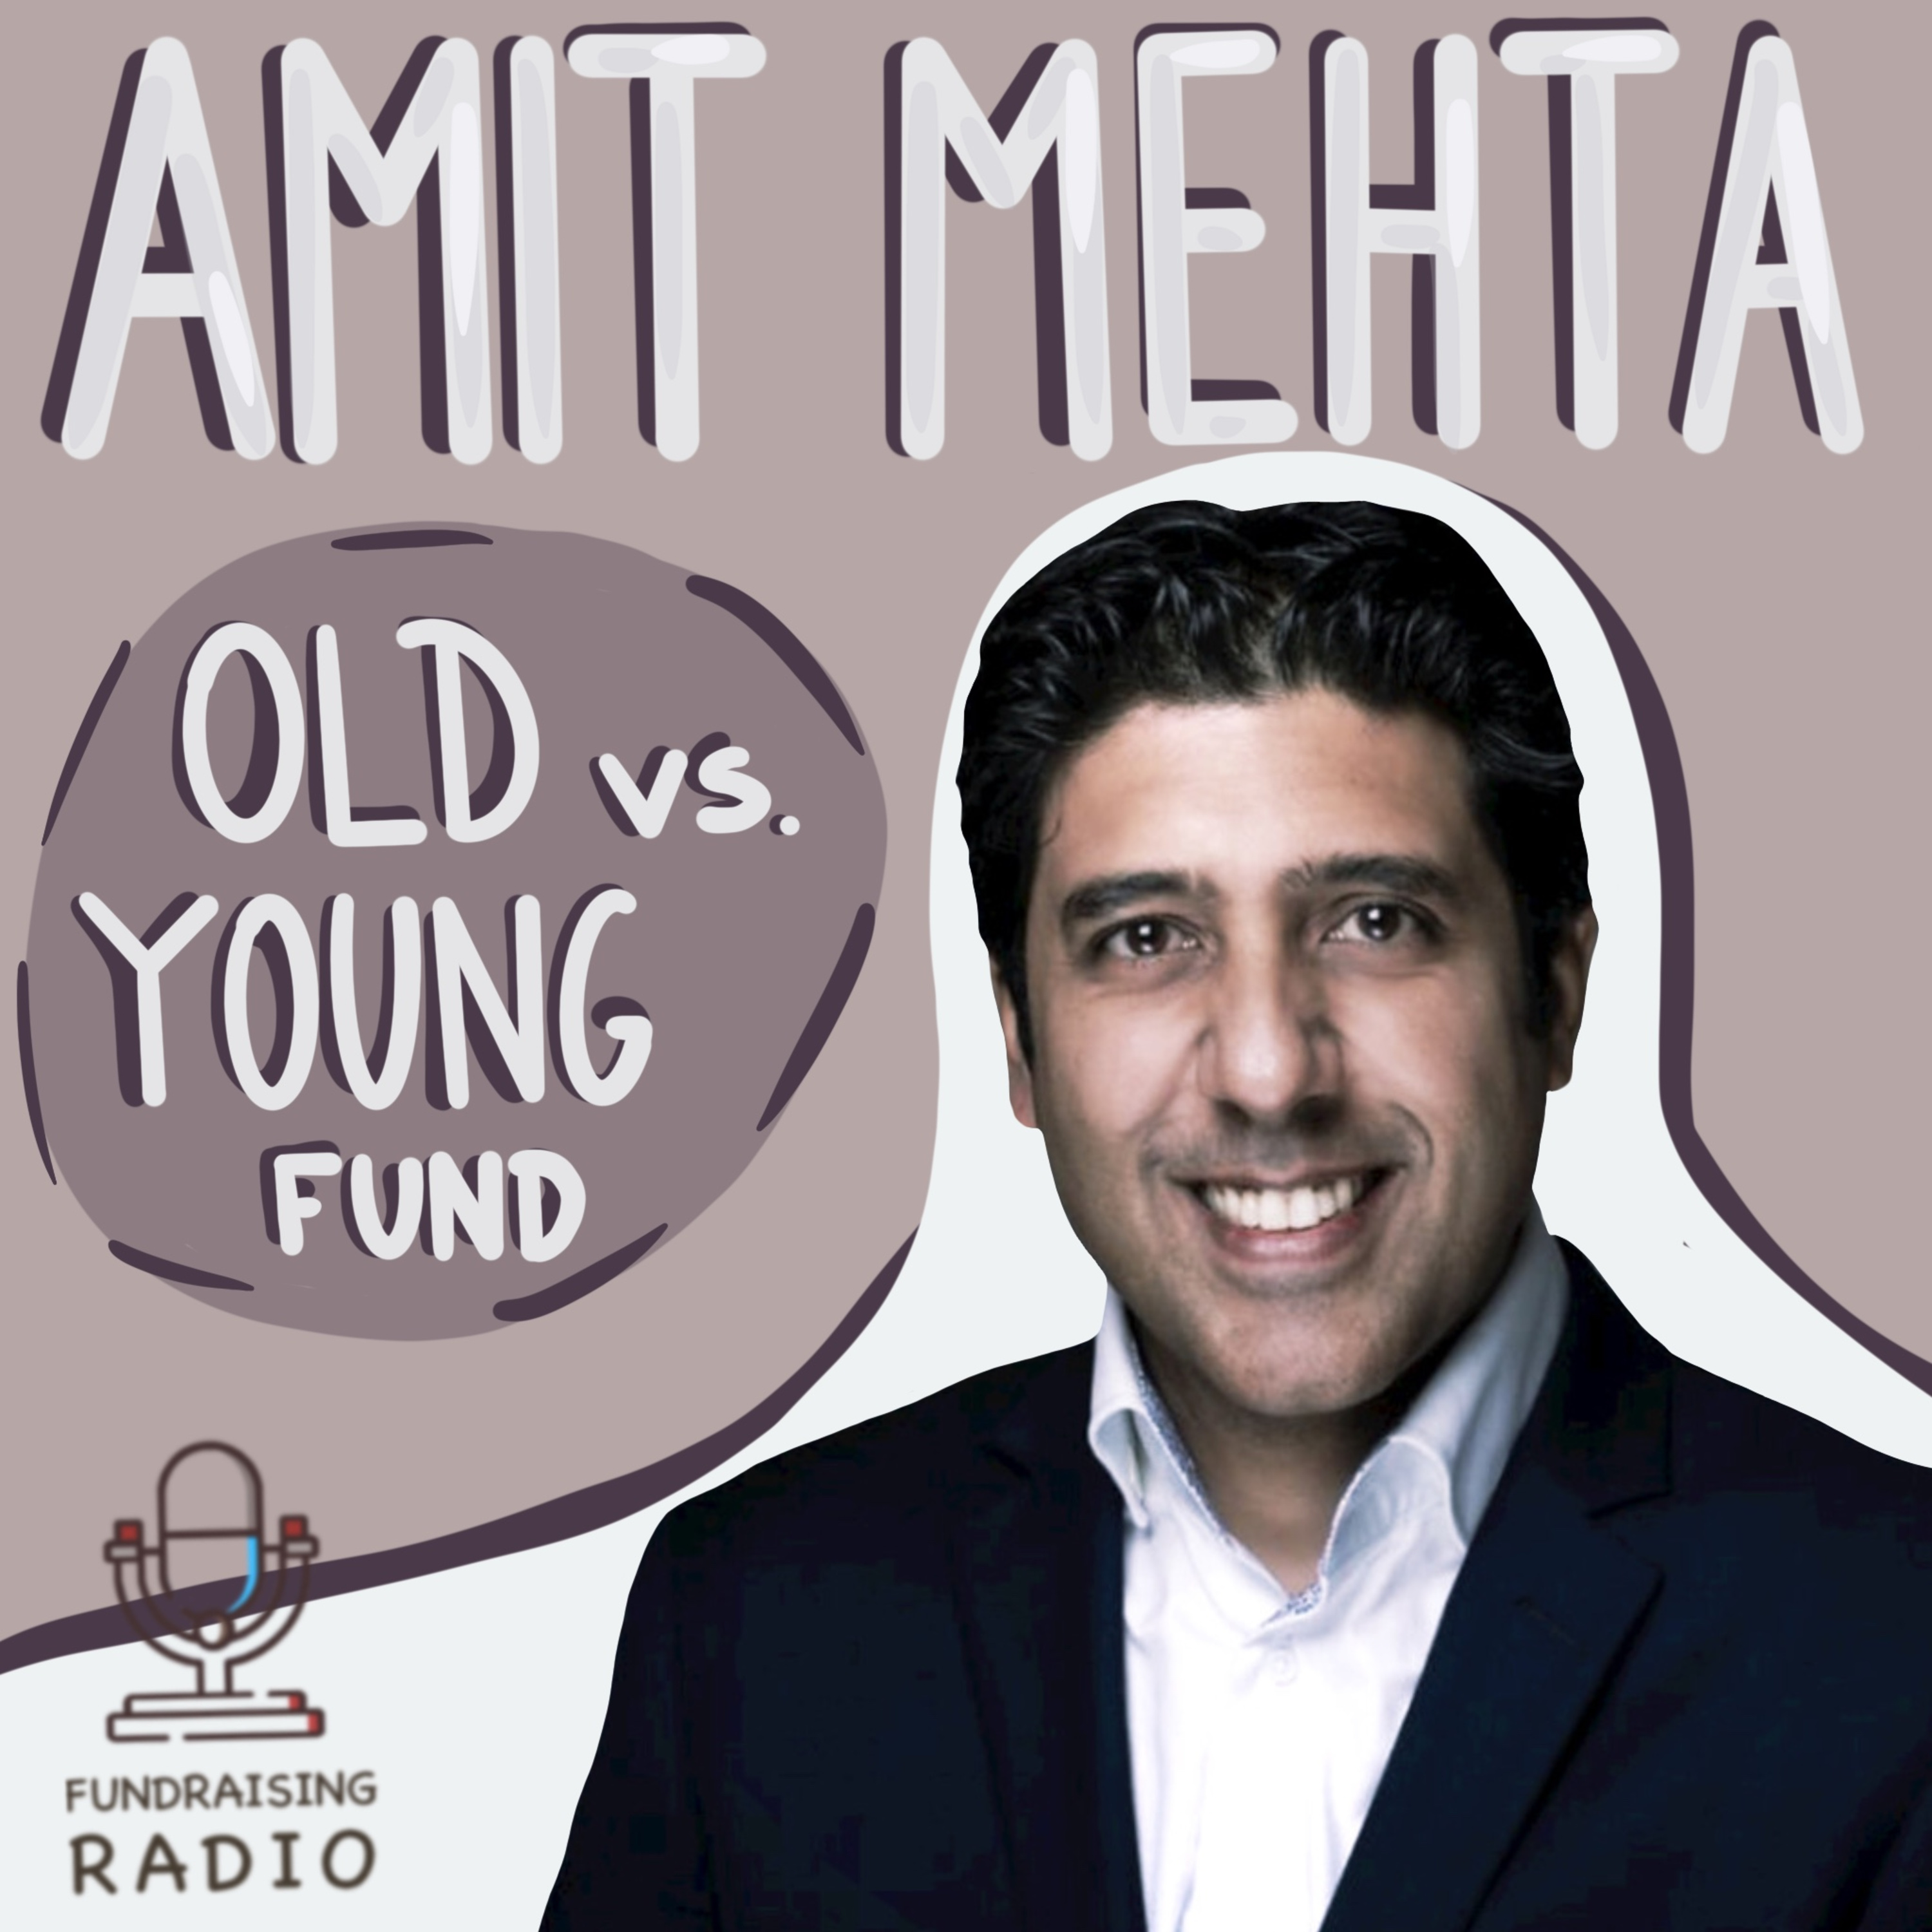 Old VS young fund - who to reach out to and why? By Amit Mehta